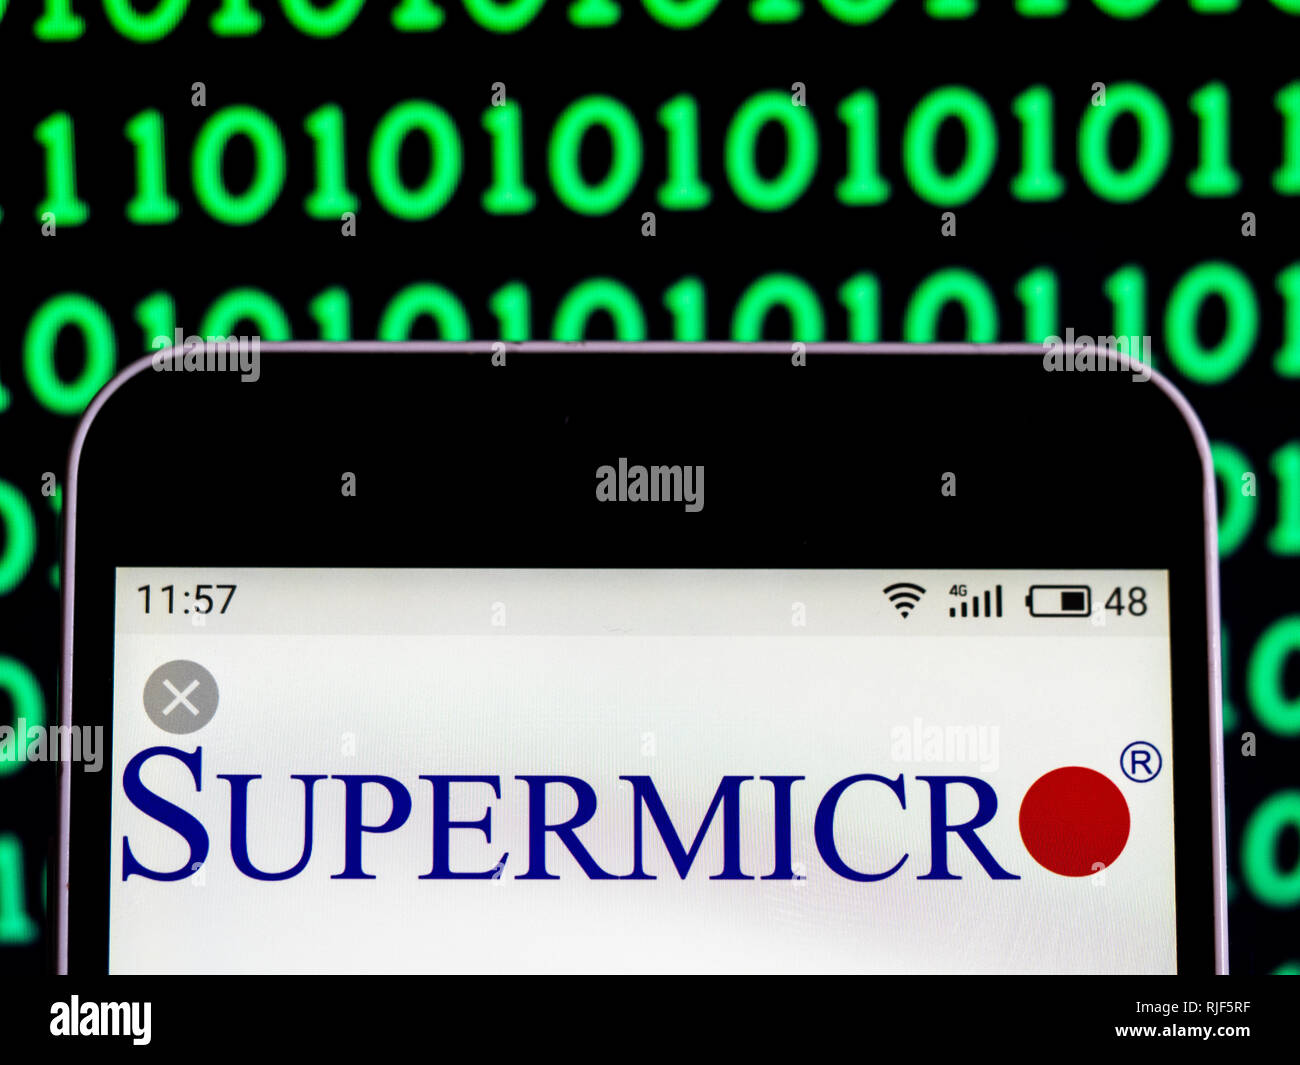 Supermicro Information technology company logo seen